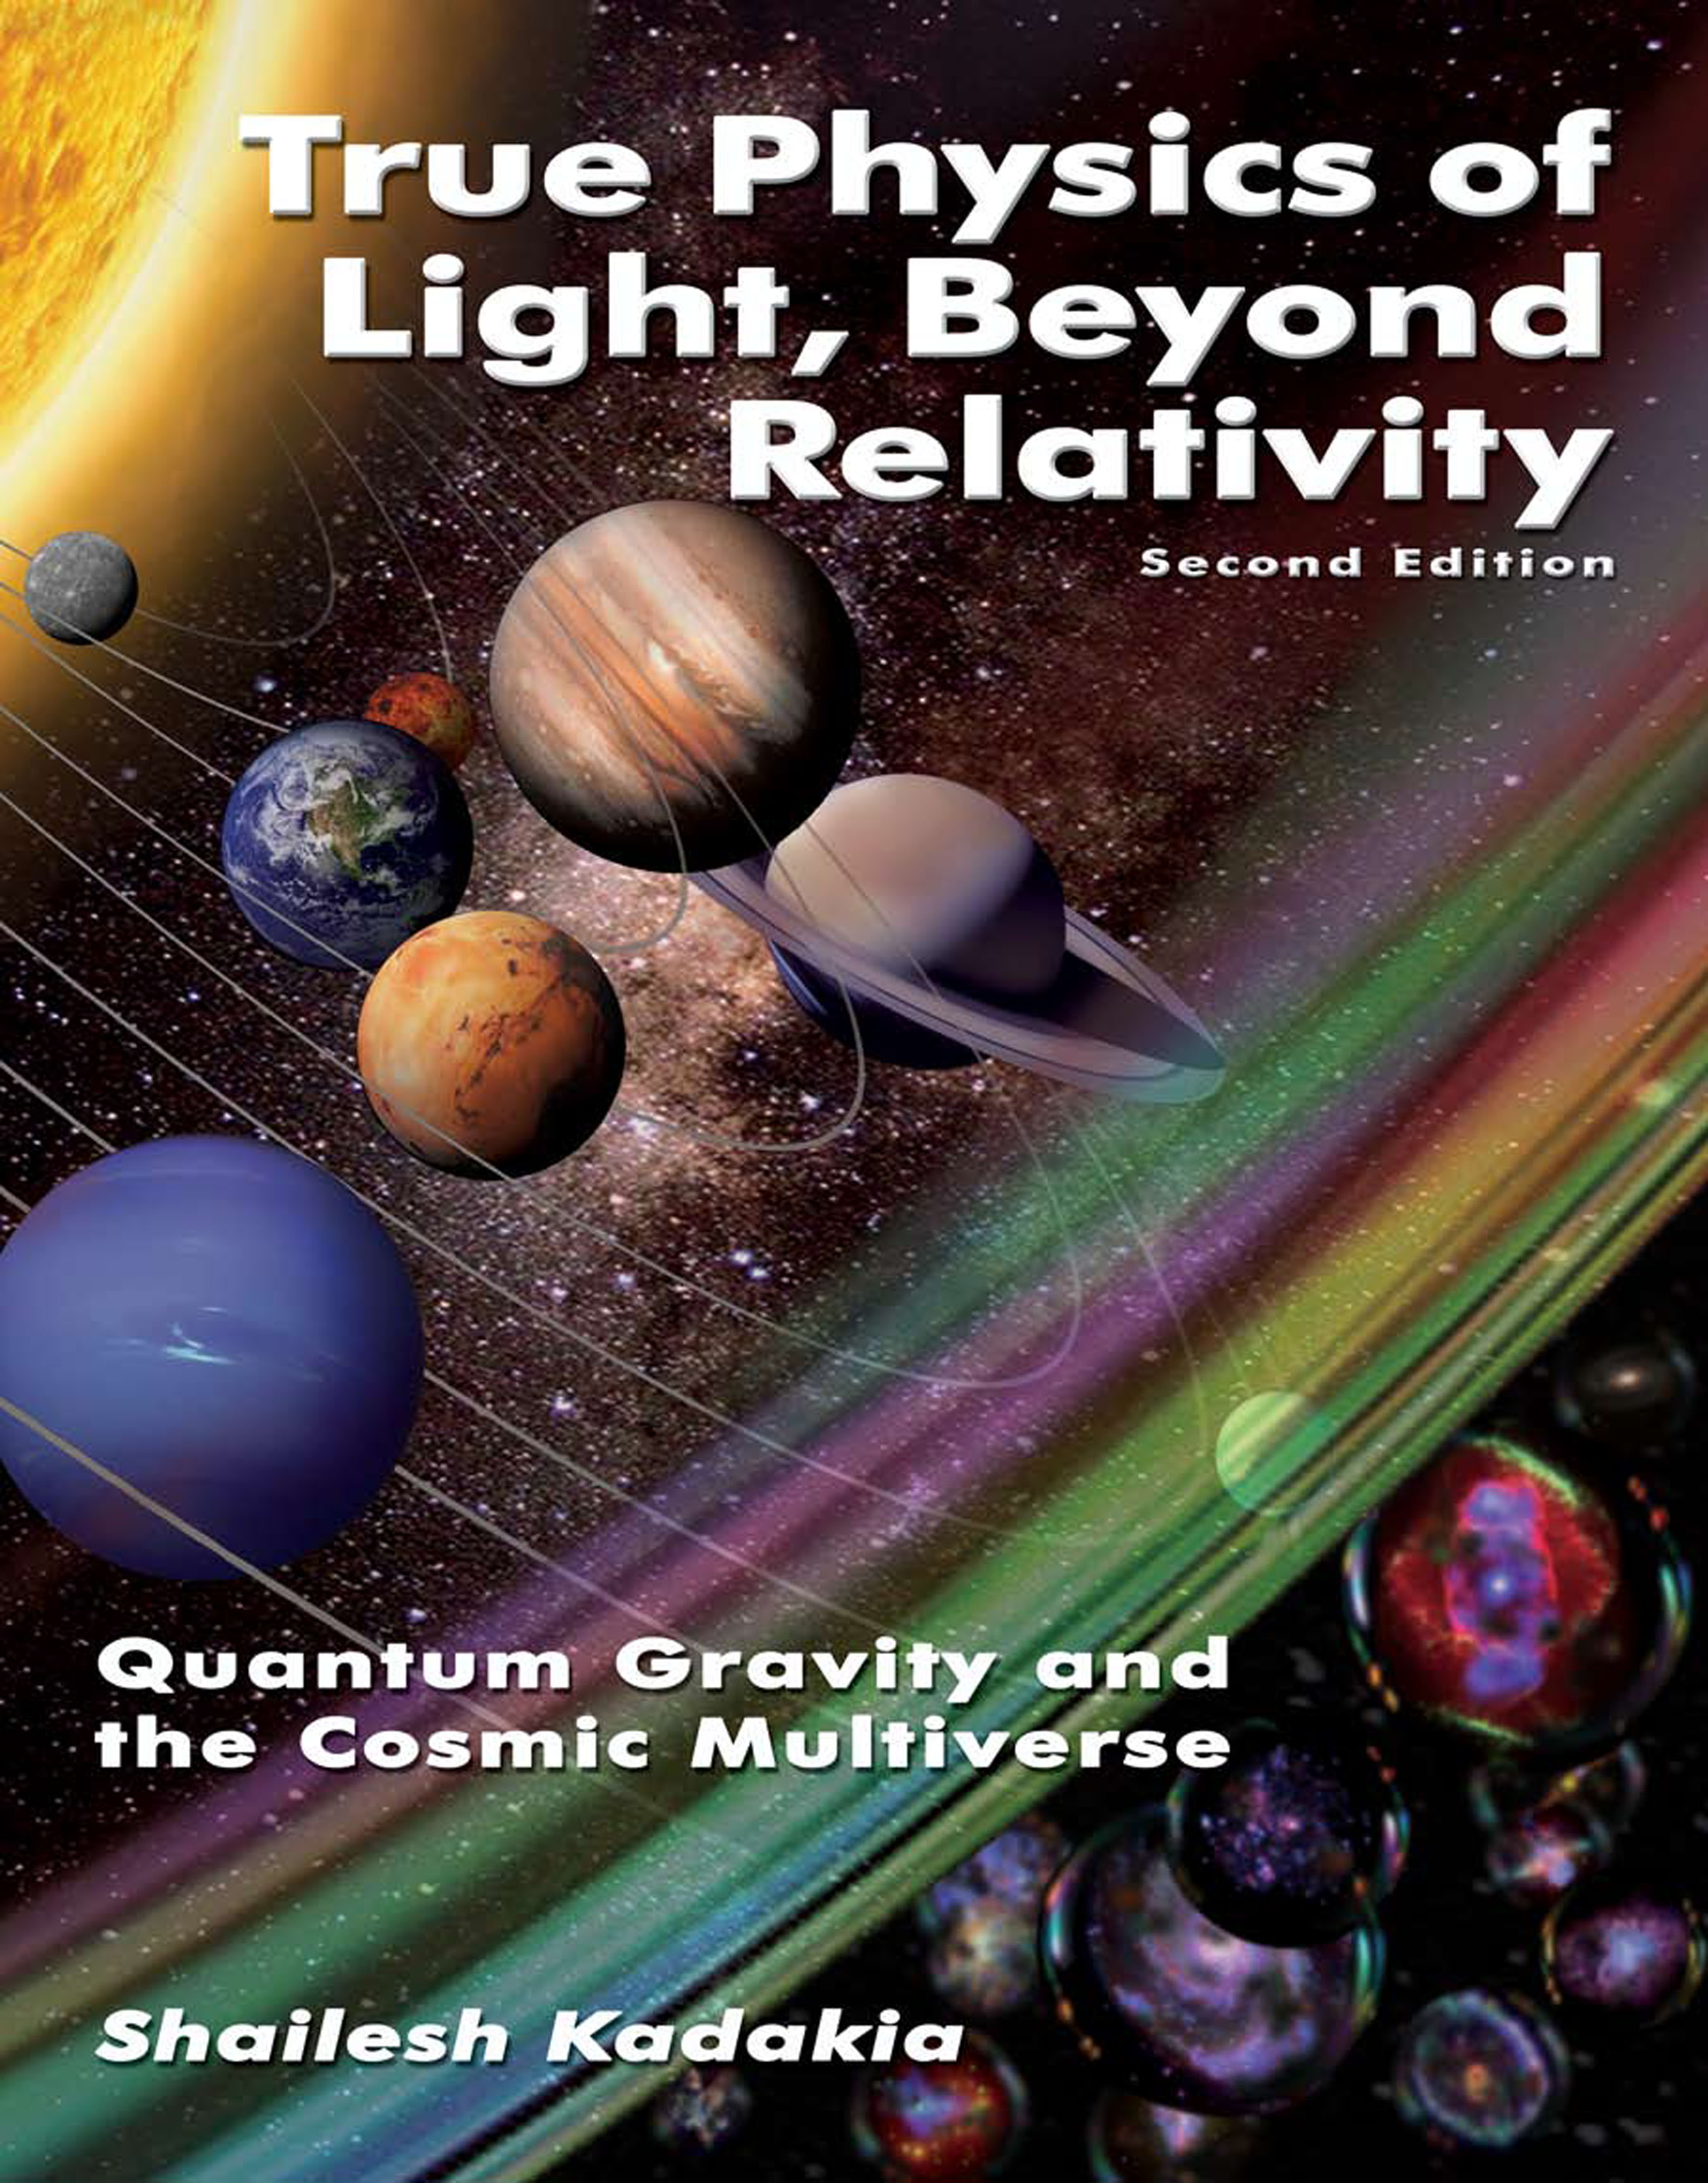 True Physics of Light Beyond Relativity, Second Edition